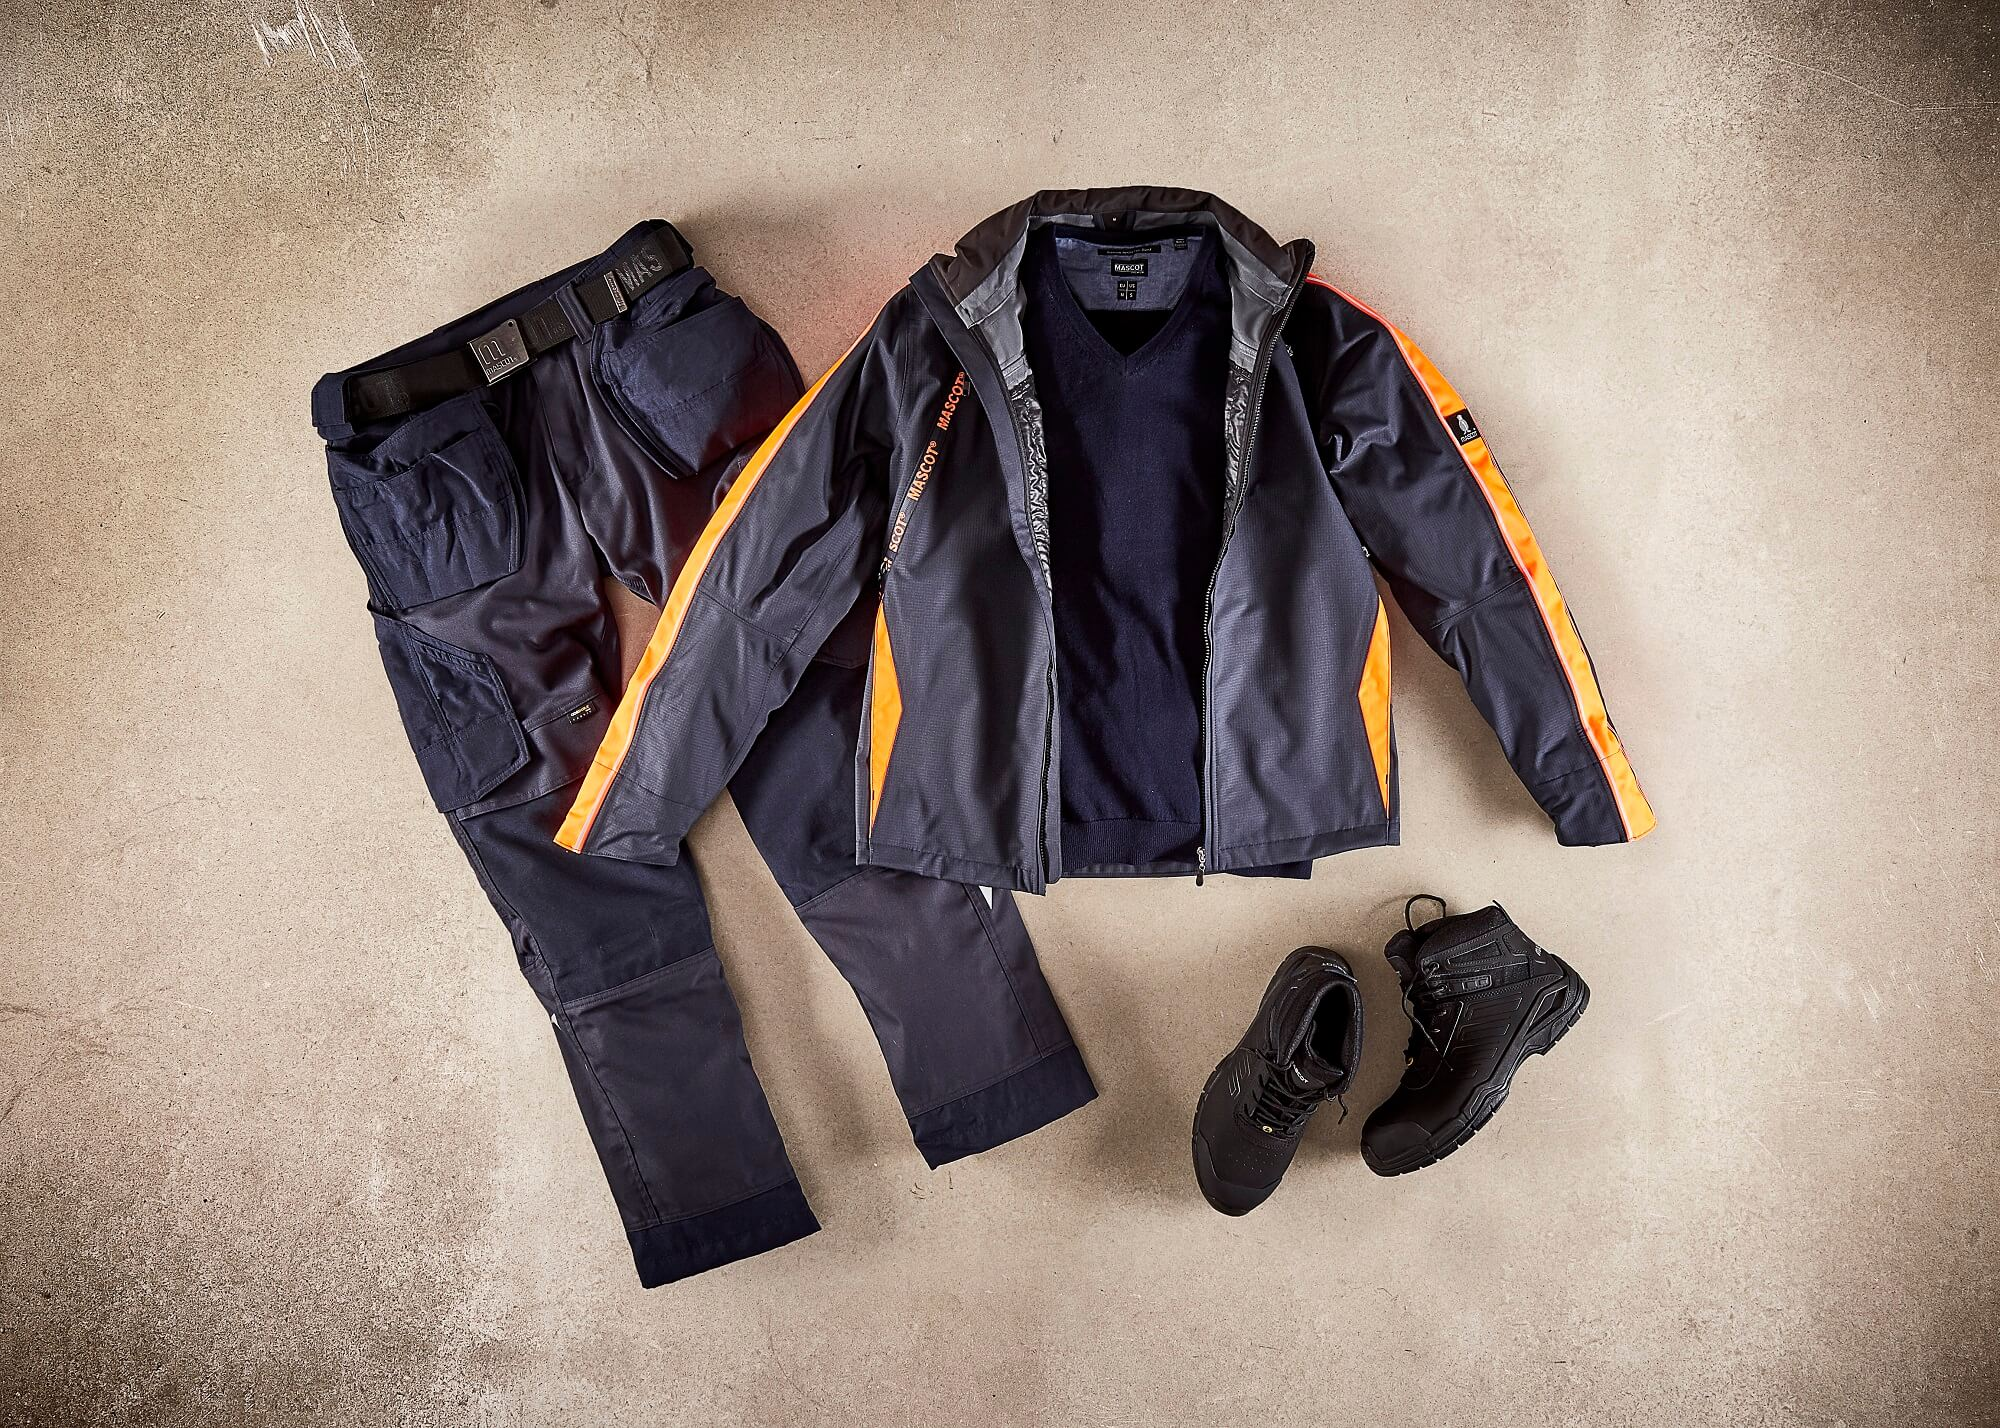 Navy - Outer Shell Jacket, Work Trousers & Safety Boot - Collage